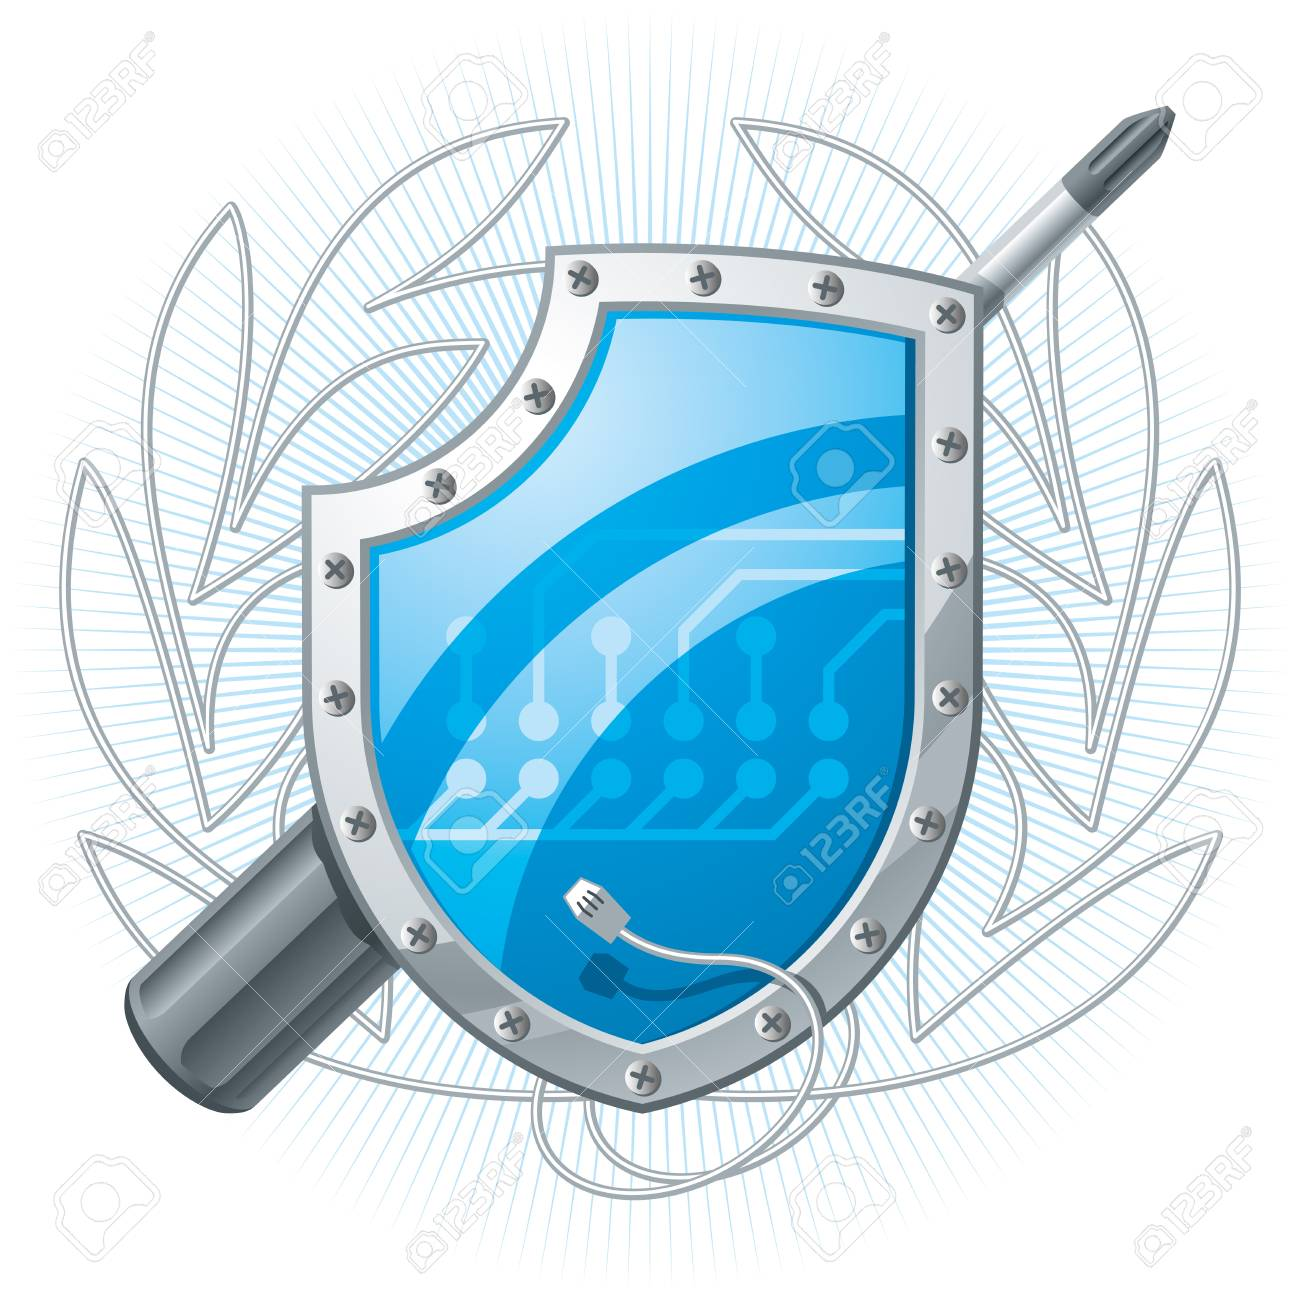 Electronic shield with screwdriver and wire wreath. Vector Illustration Stock Vector - 9327707